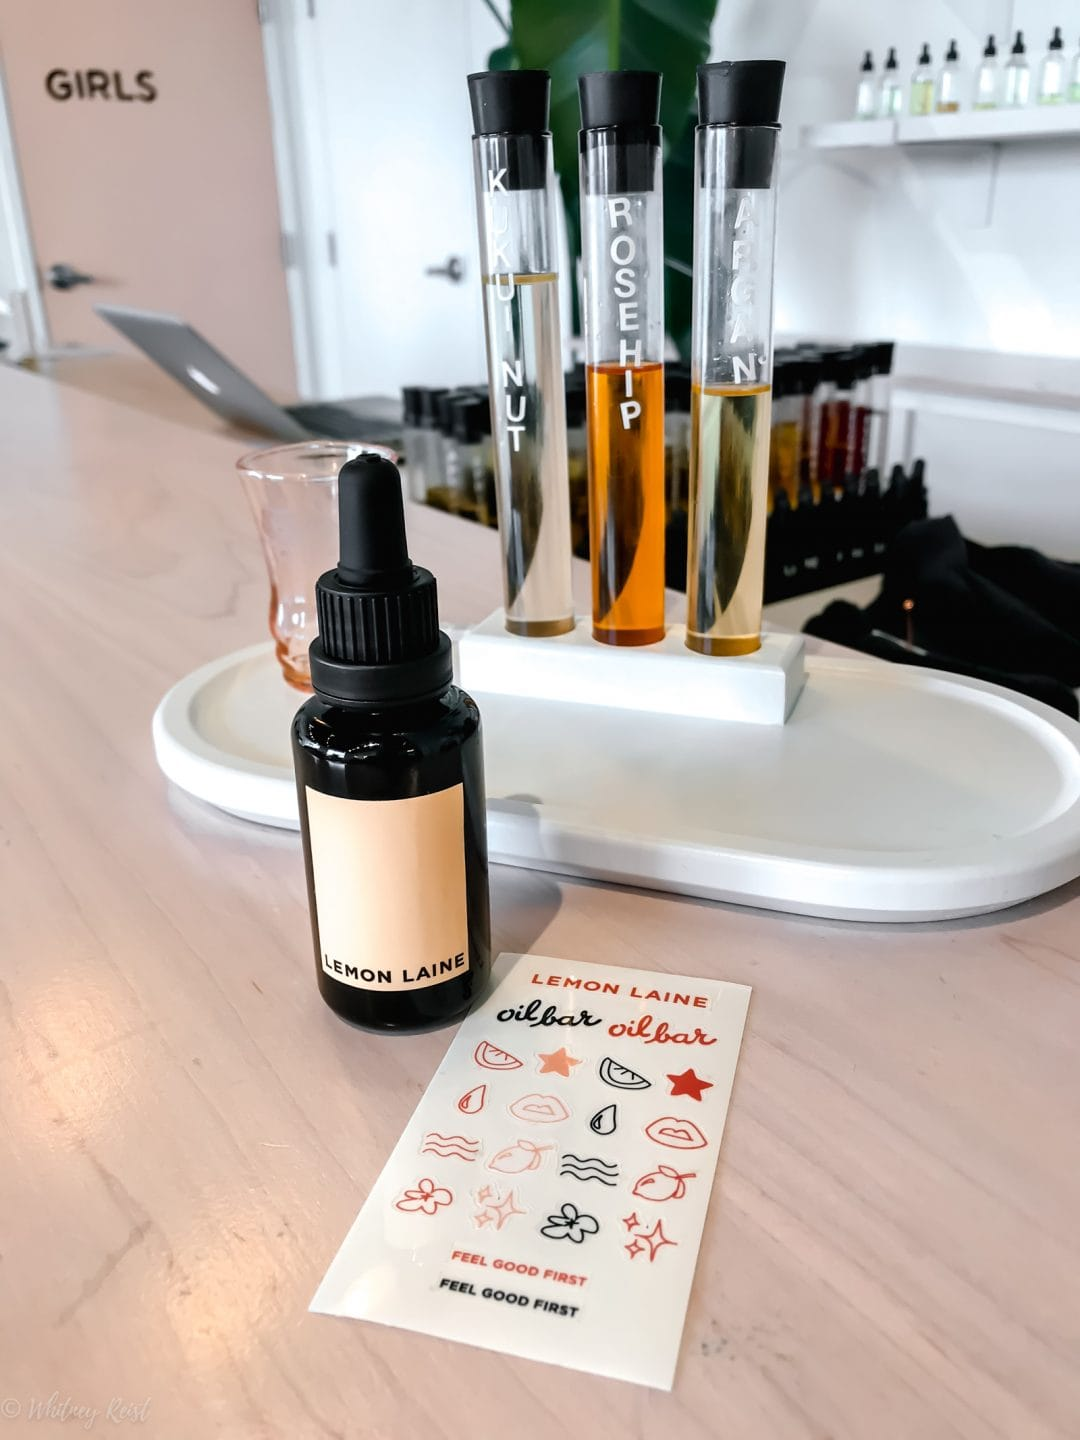 A custom facial oil being made at the Lemon Laine Oil Bar in Nashville, TN.